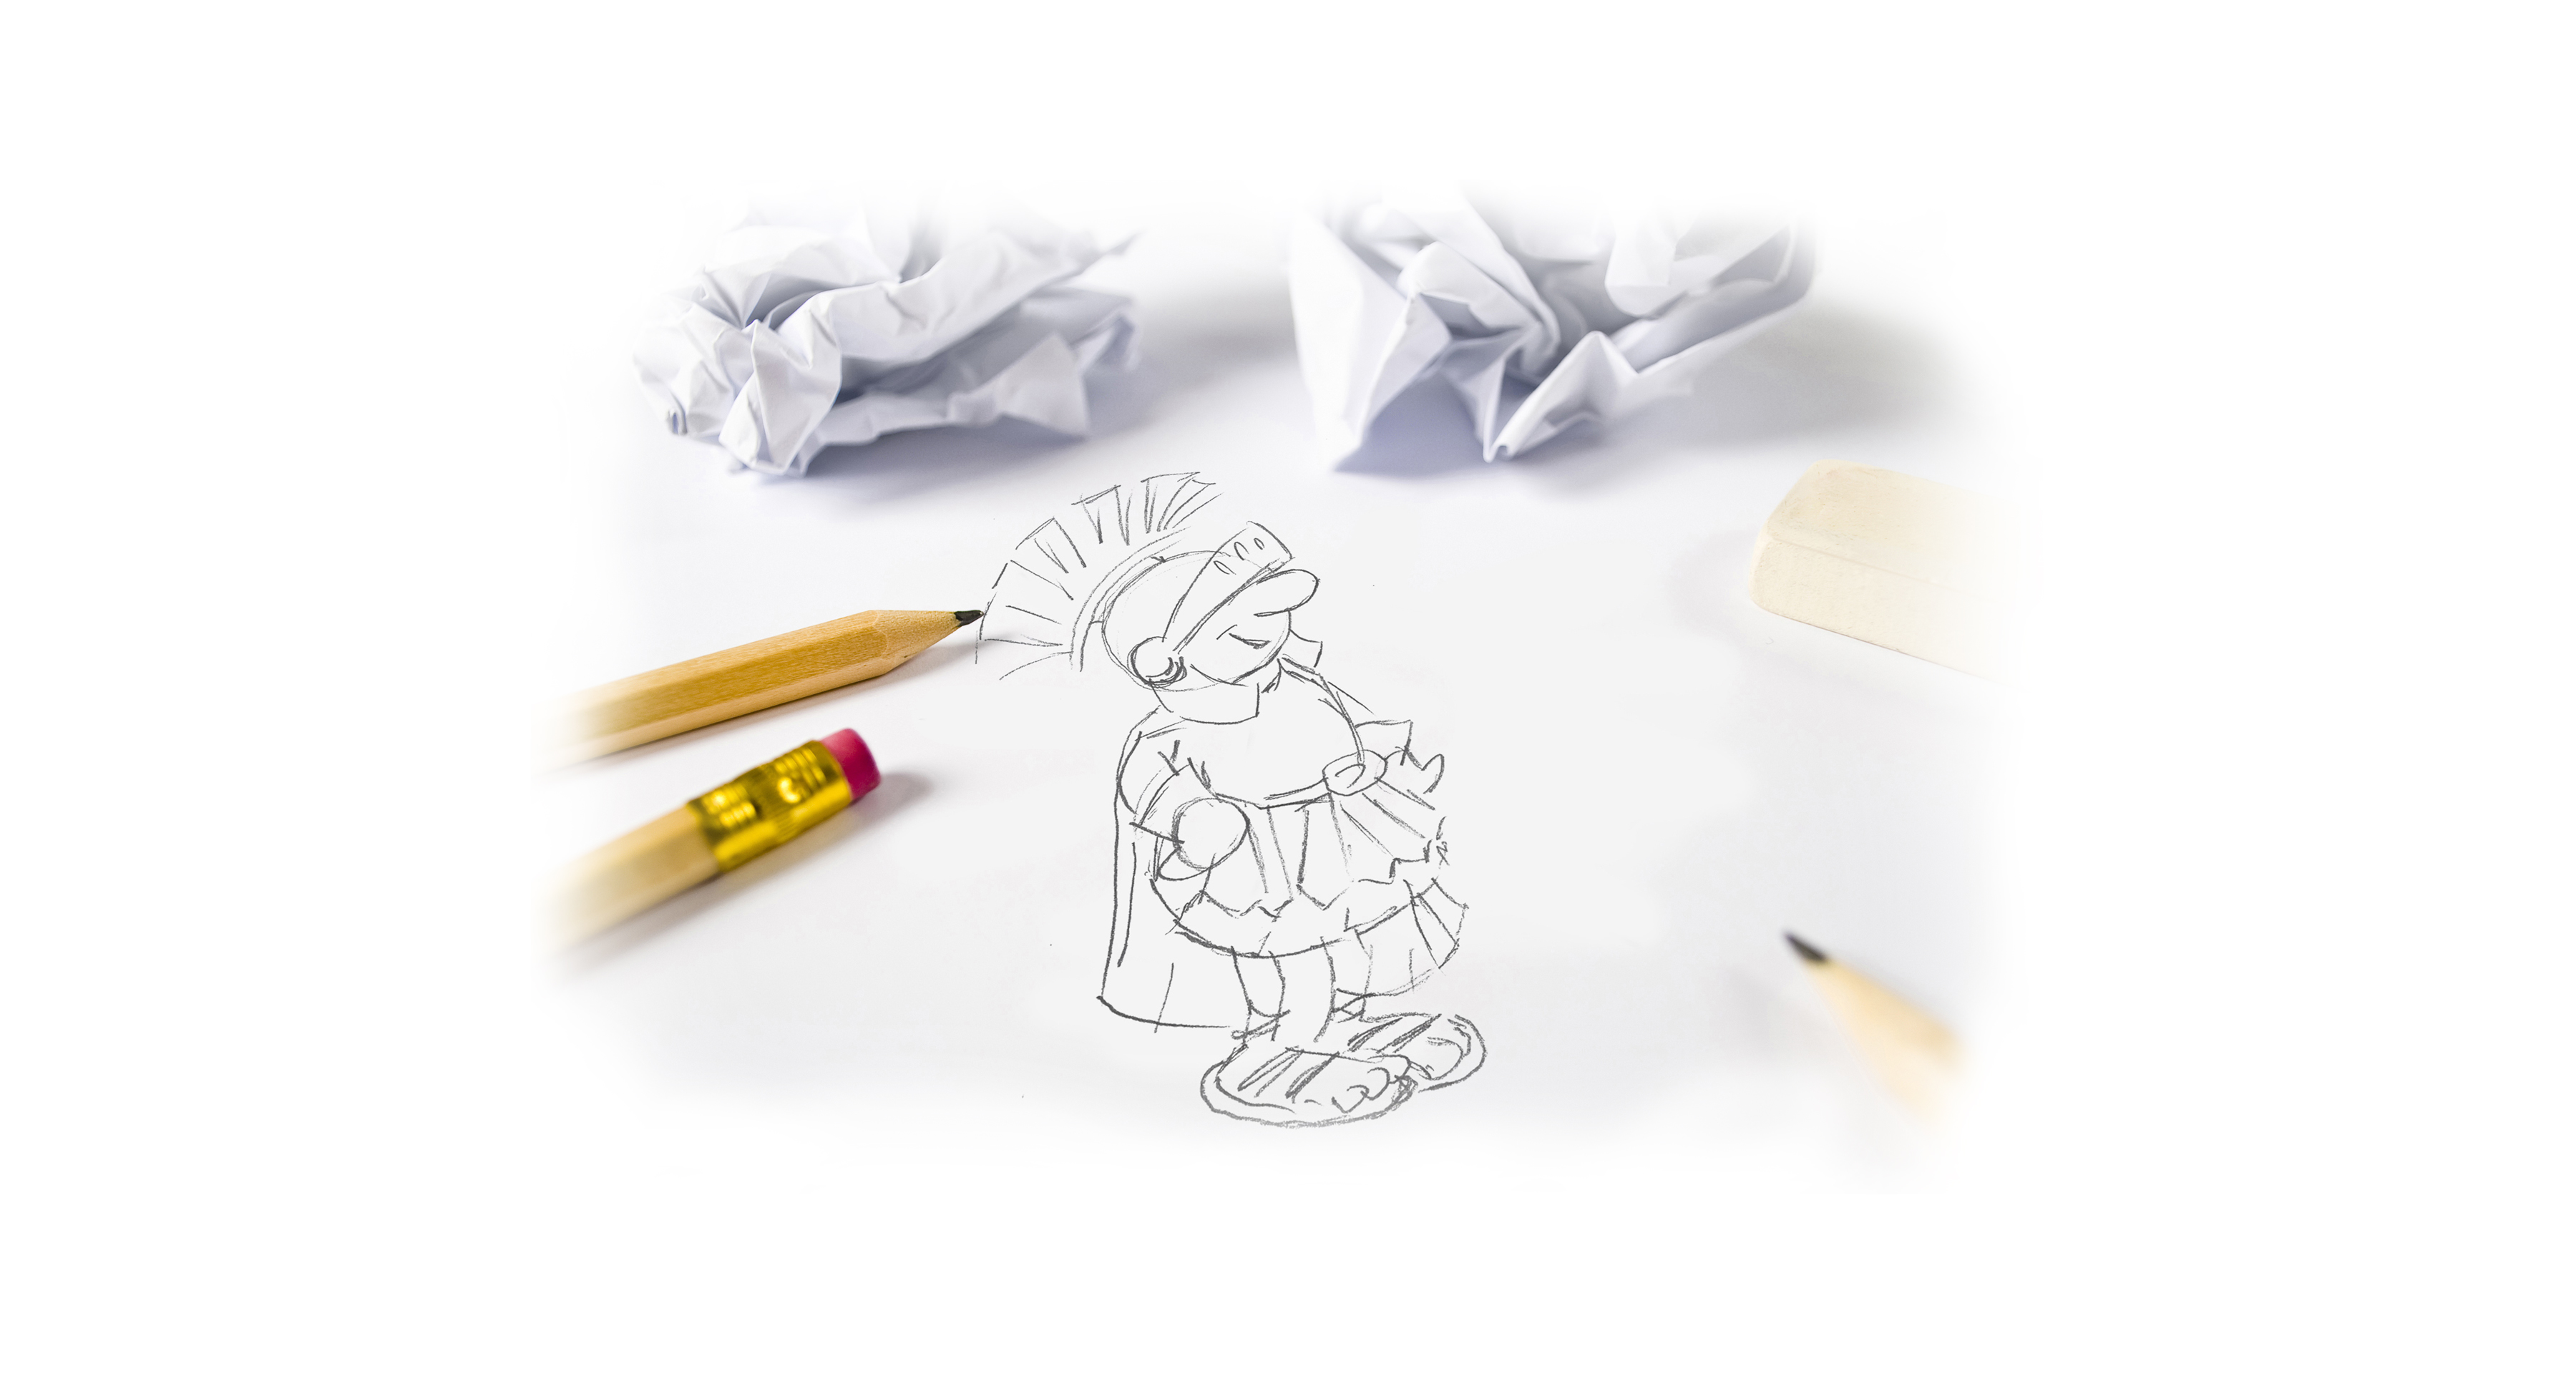 pencildrawing_swaggy_iStock_000019097012Large